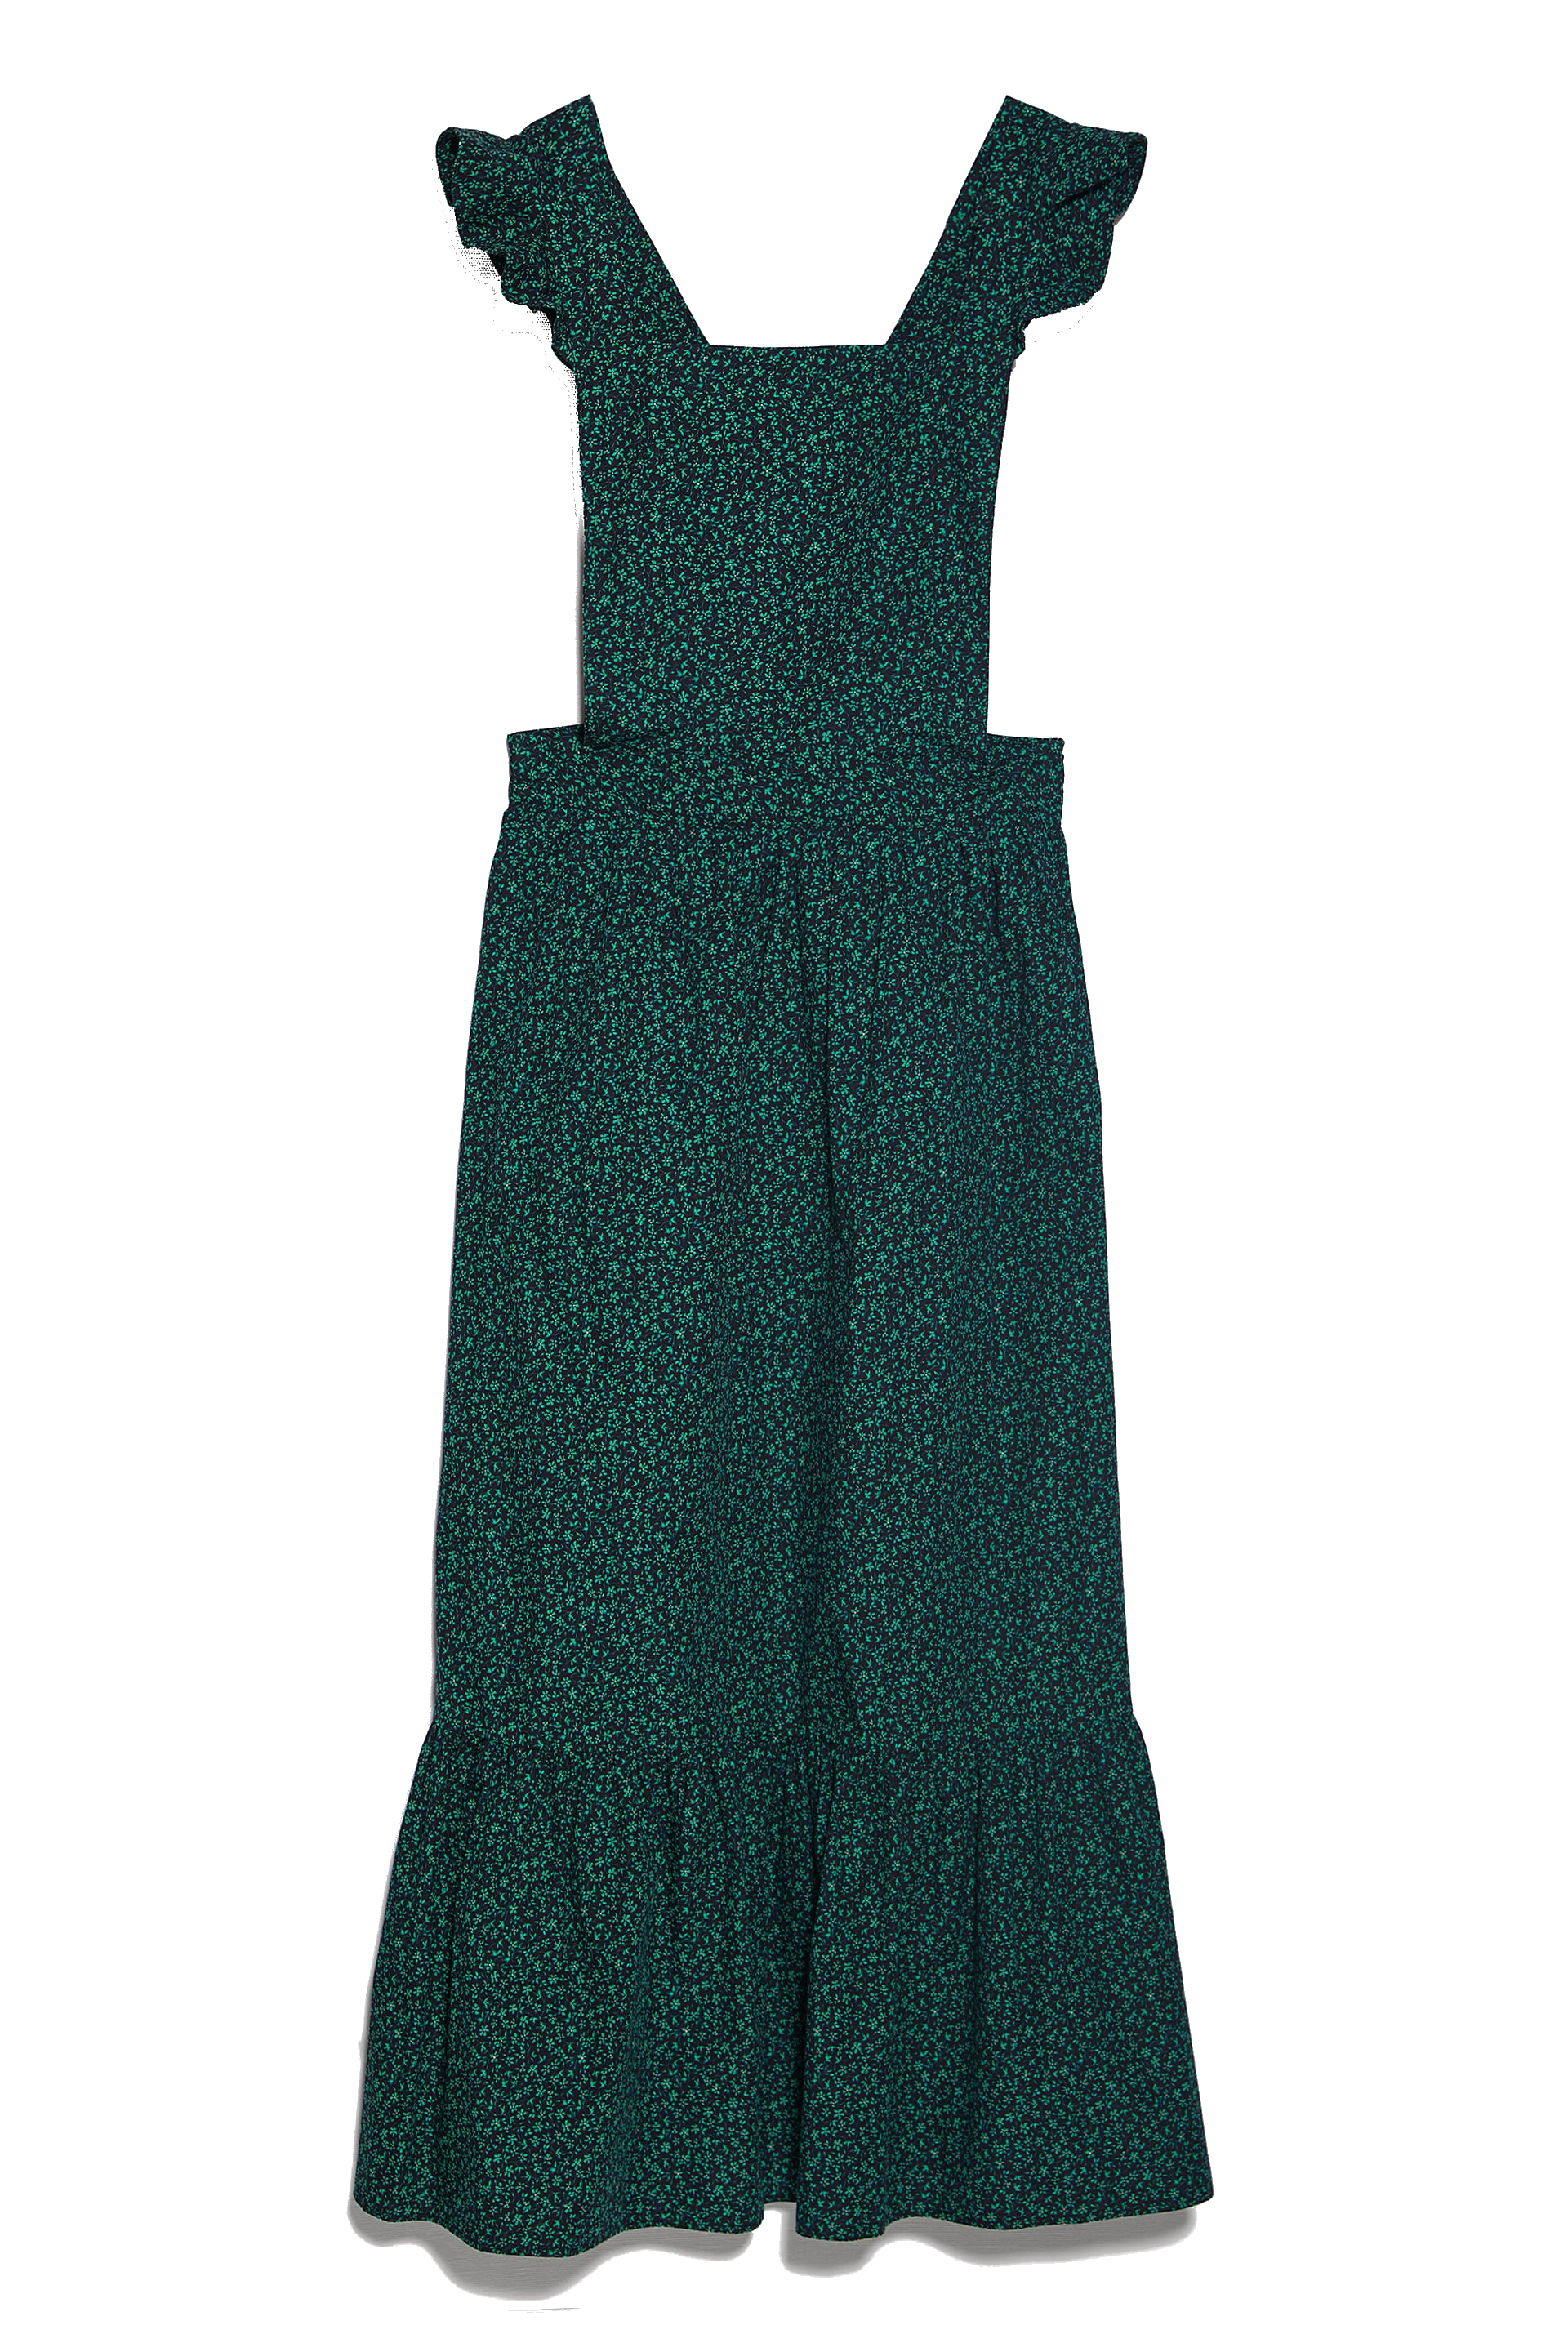 Green star print dress from Zara.